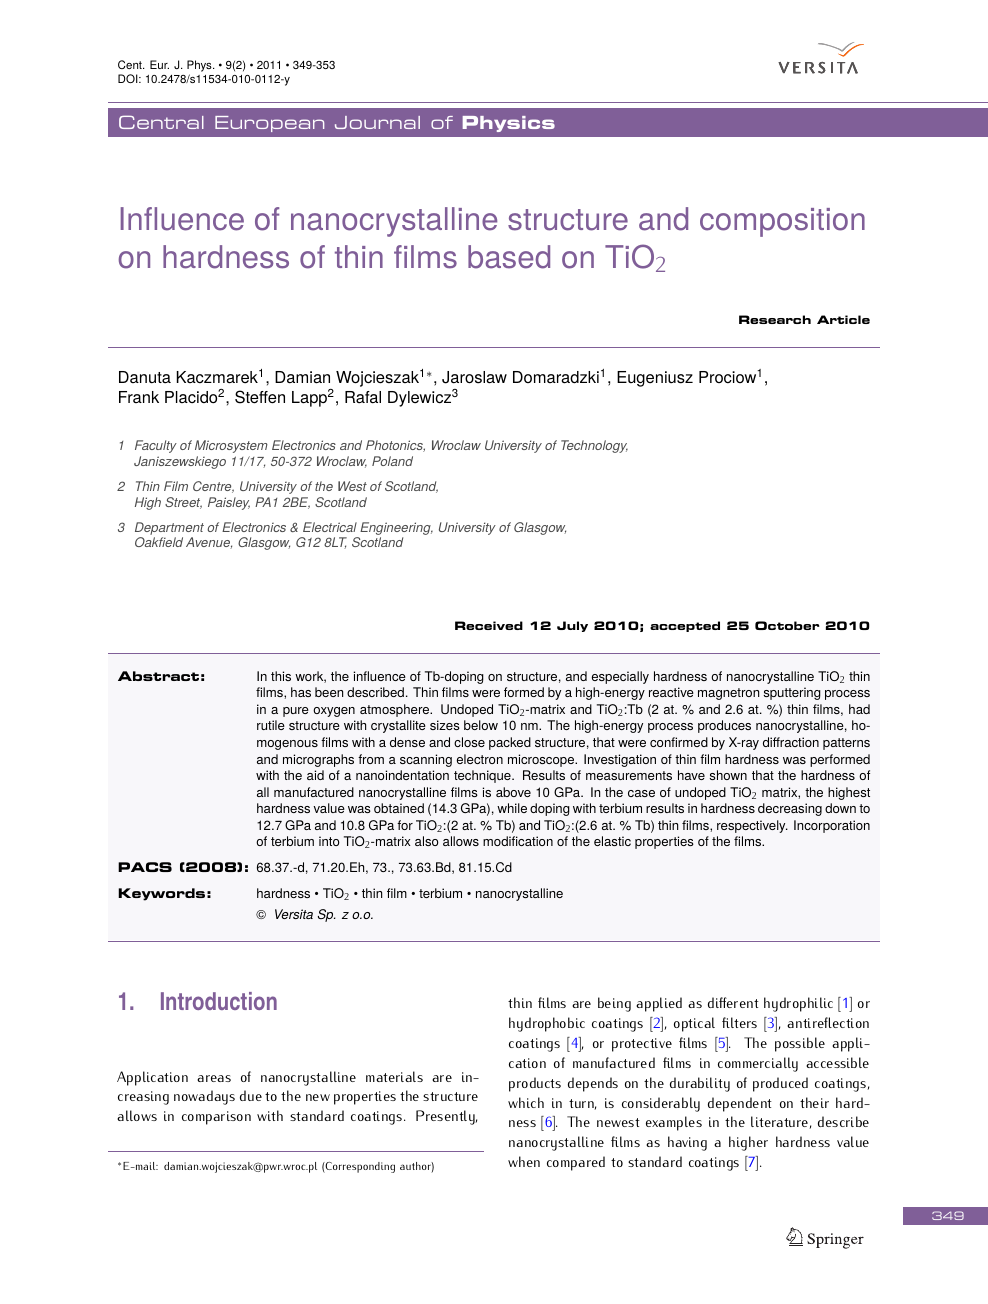 Influence of nanocrystalline structure and composition on